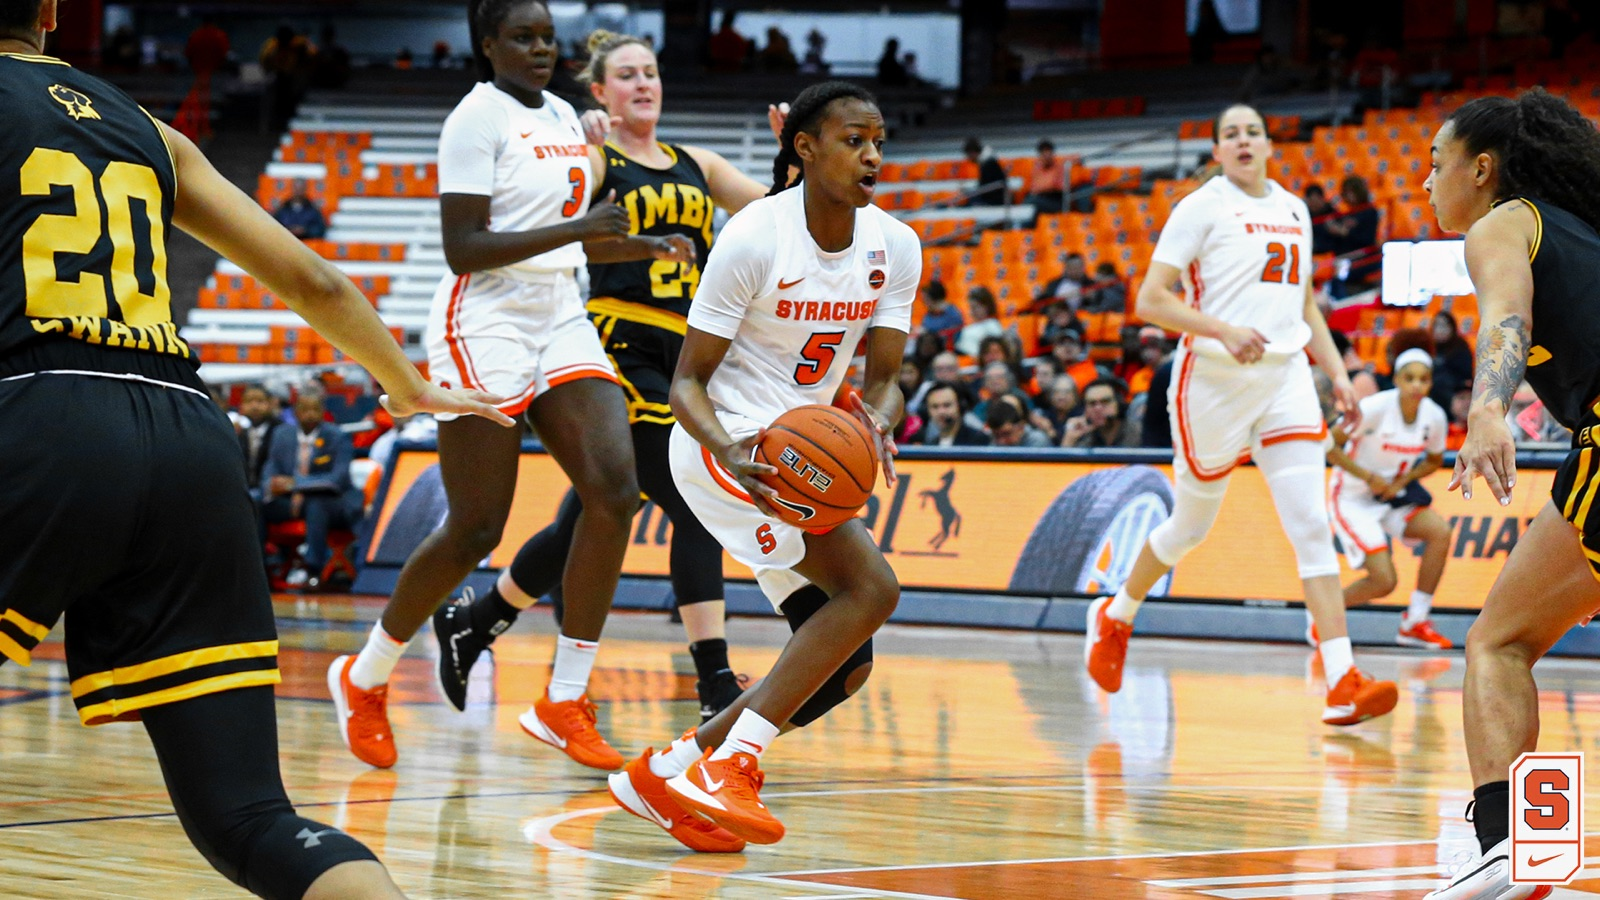 Syracuse bounces back with an 82-48 win over UMBC